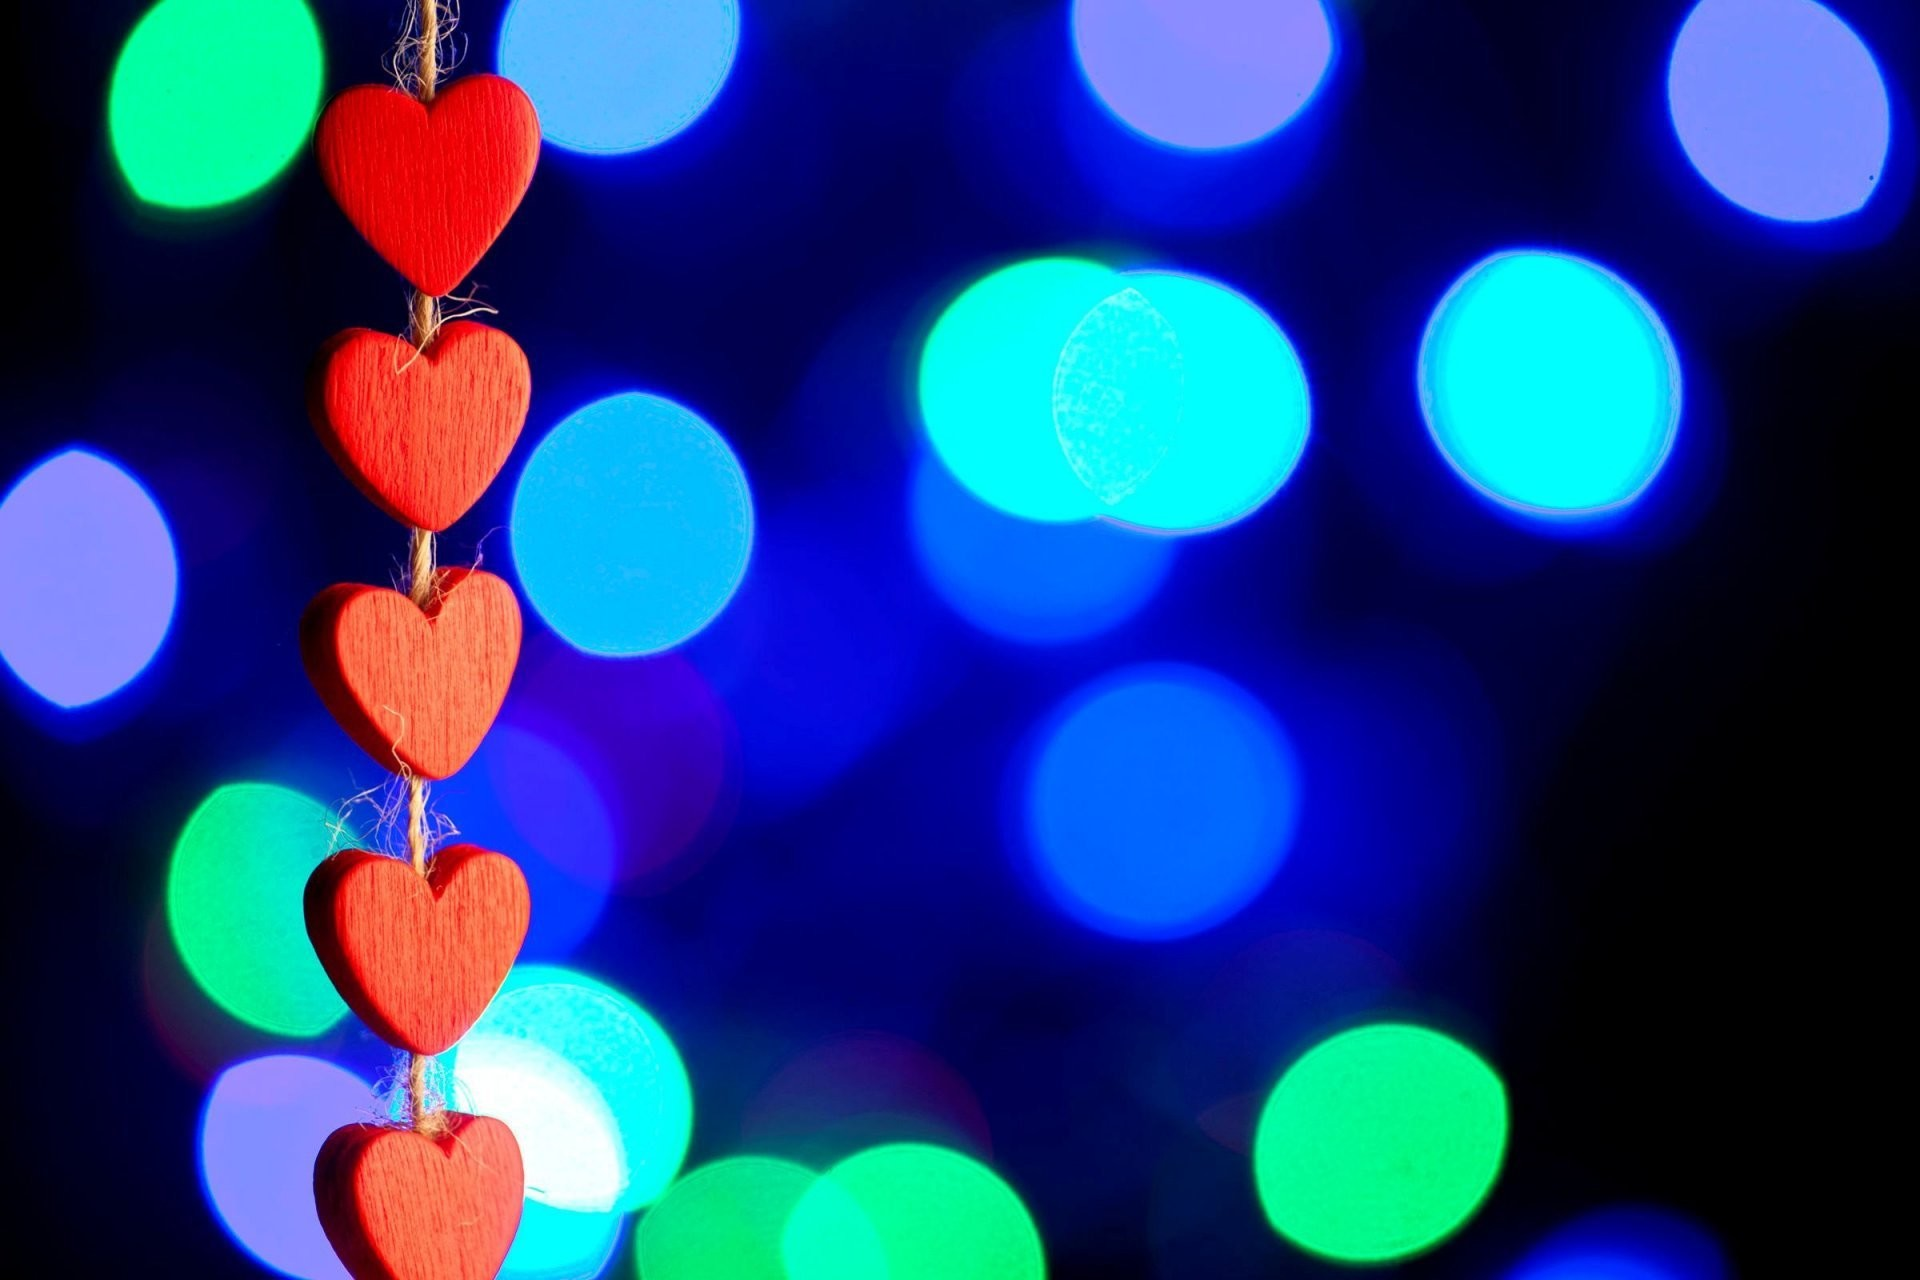 mood heart heart red love bokeh blur love wallpaper widescreen full screen  widescreen hd wallpapers background